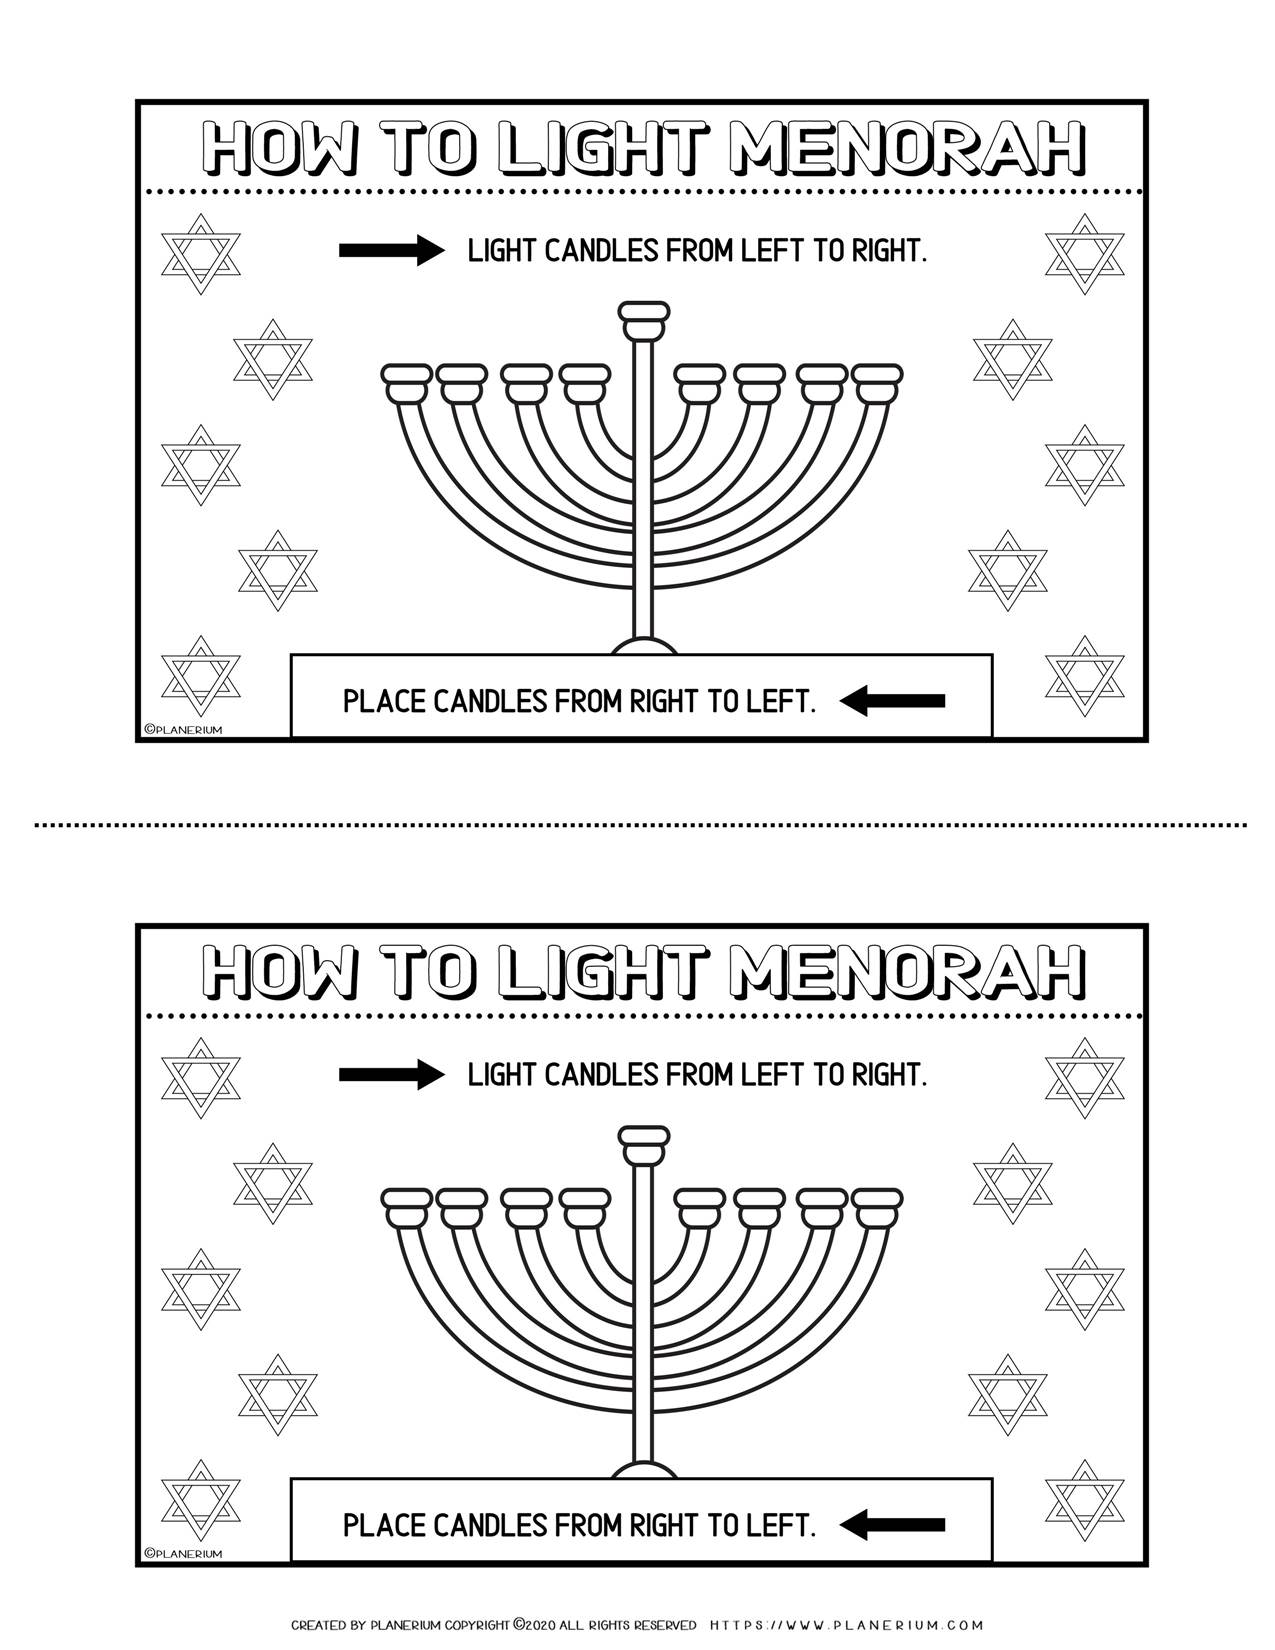 How to Light The Menorah - Free Hanukkah Coloring Page | Planerium